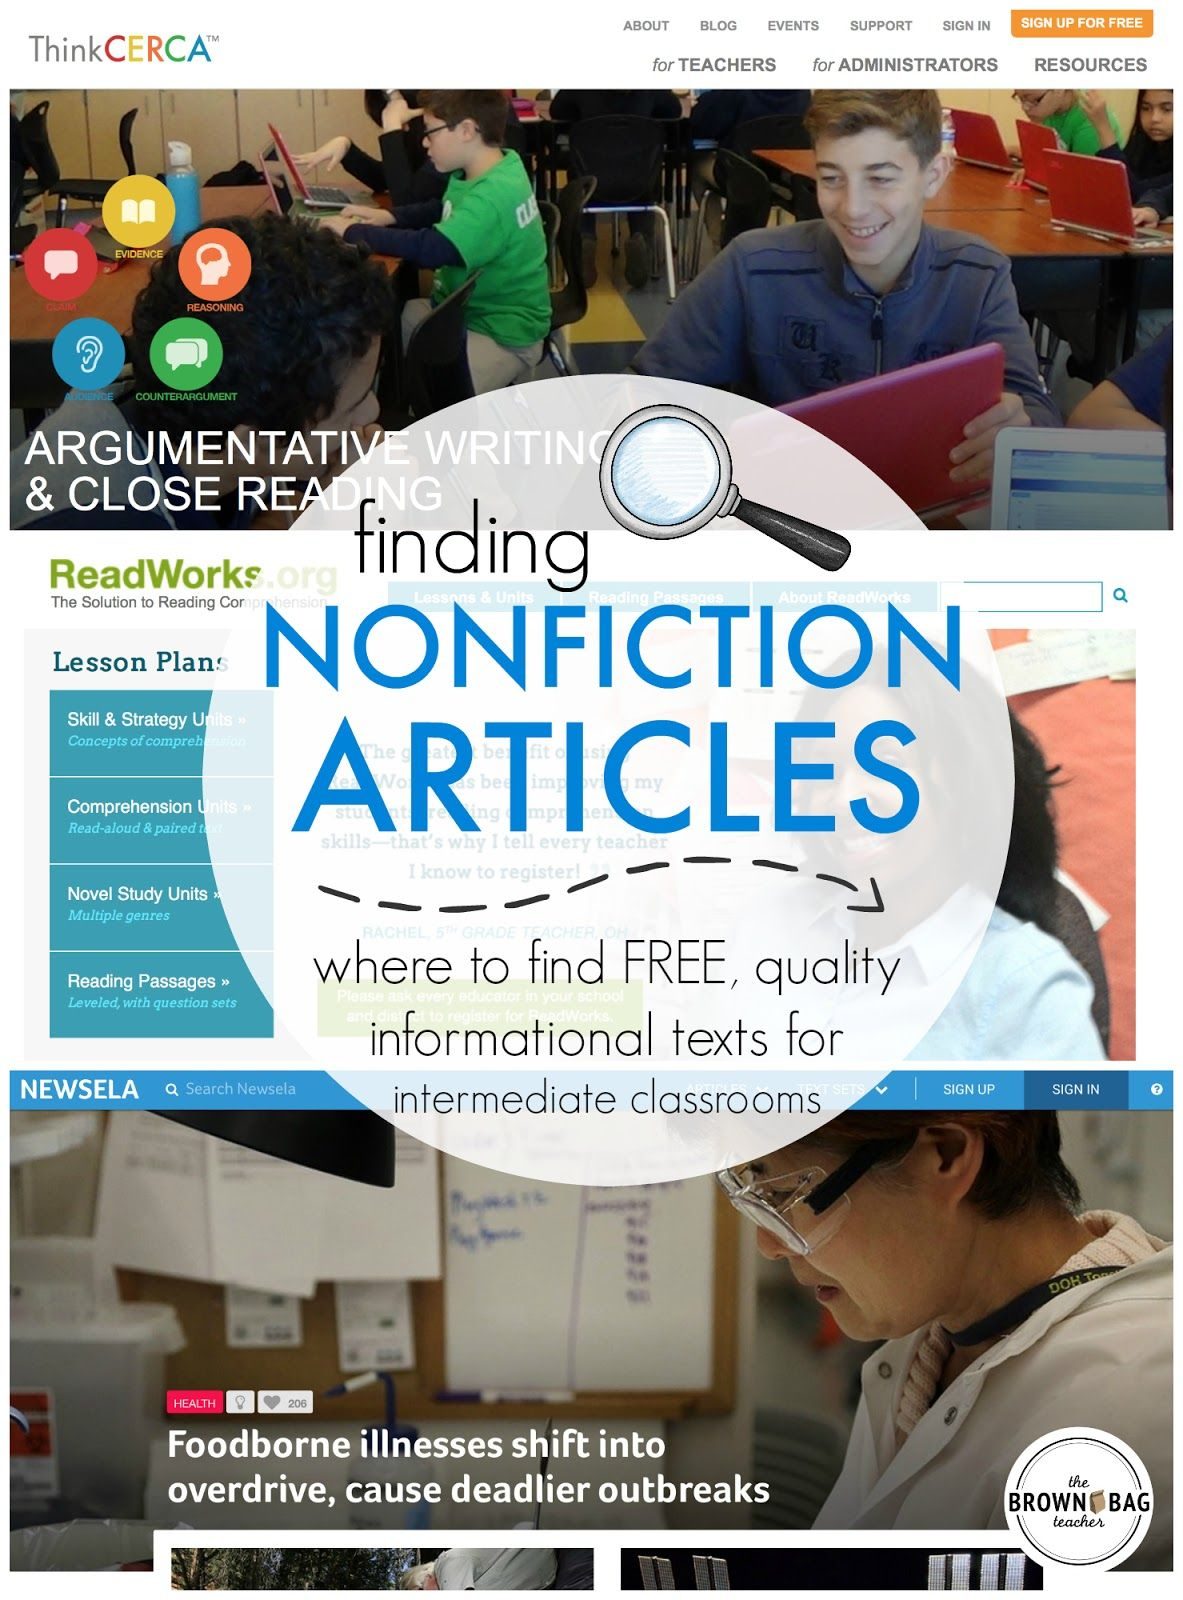 close analyzing article content designed for teachers